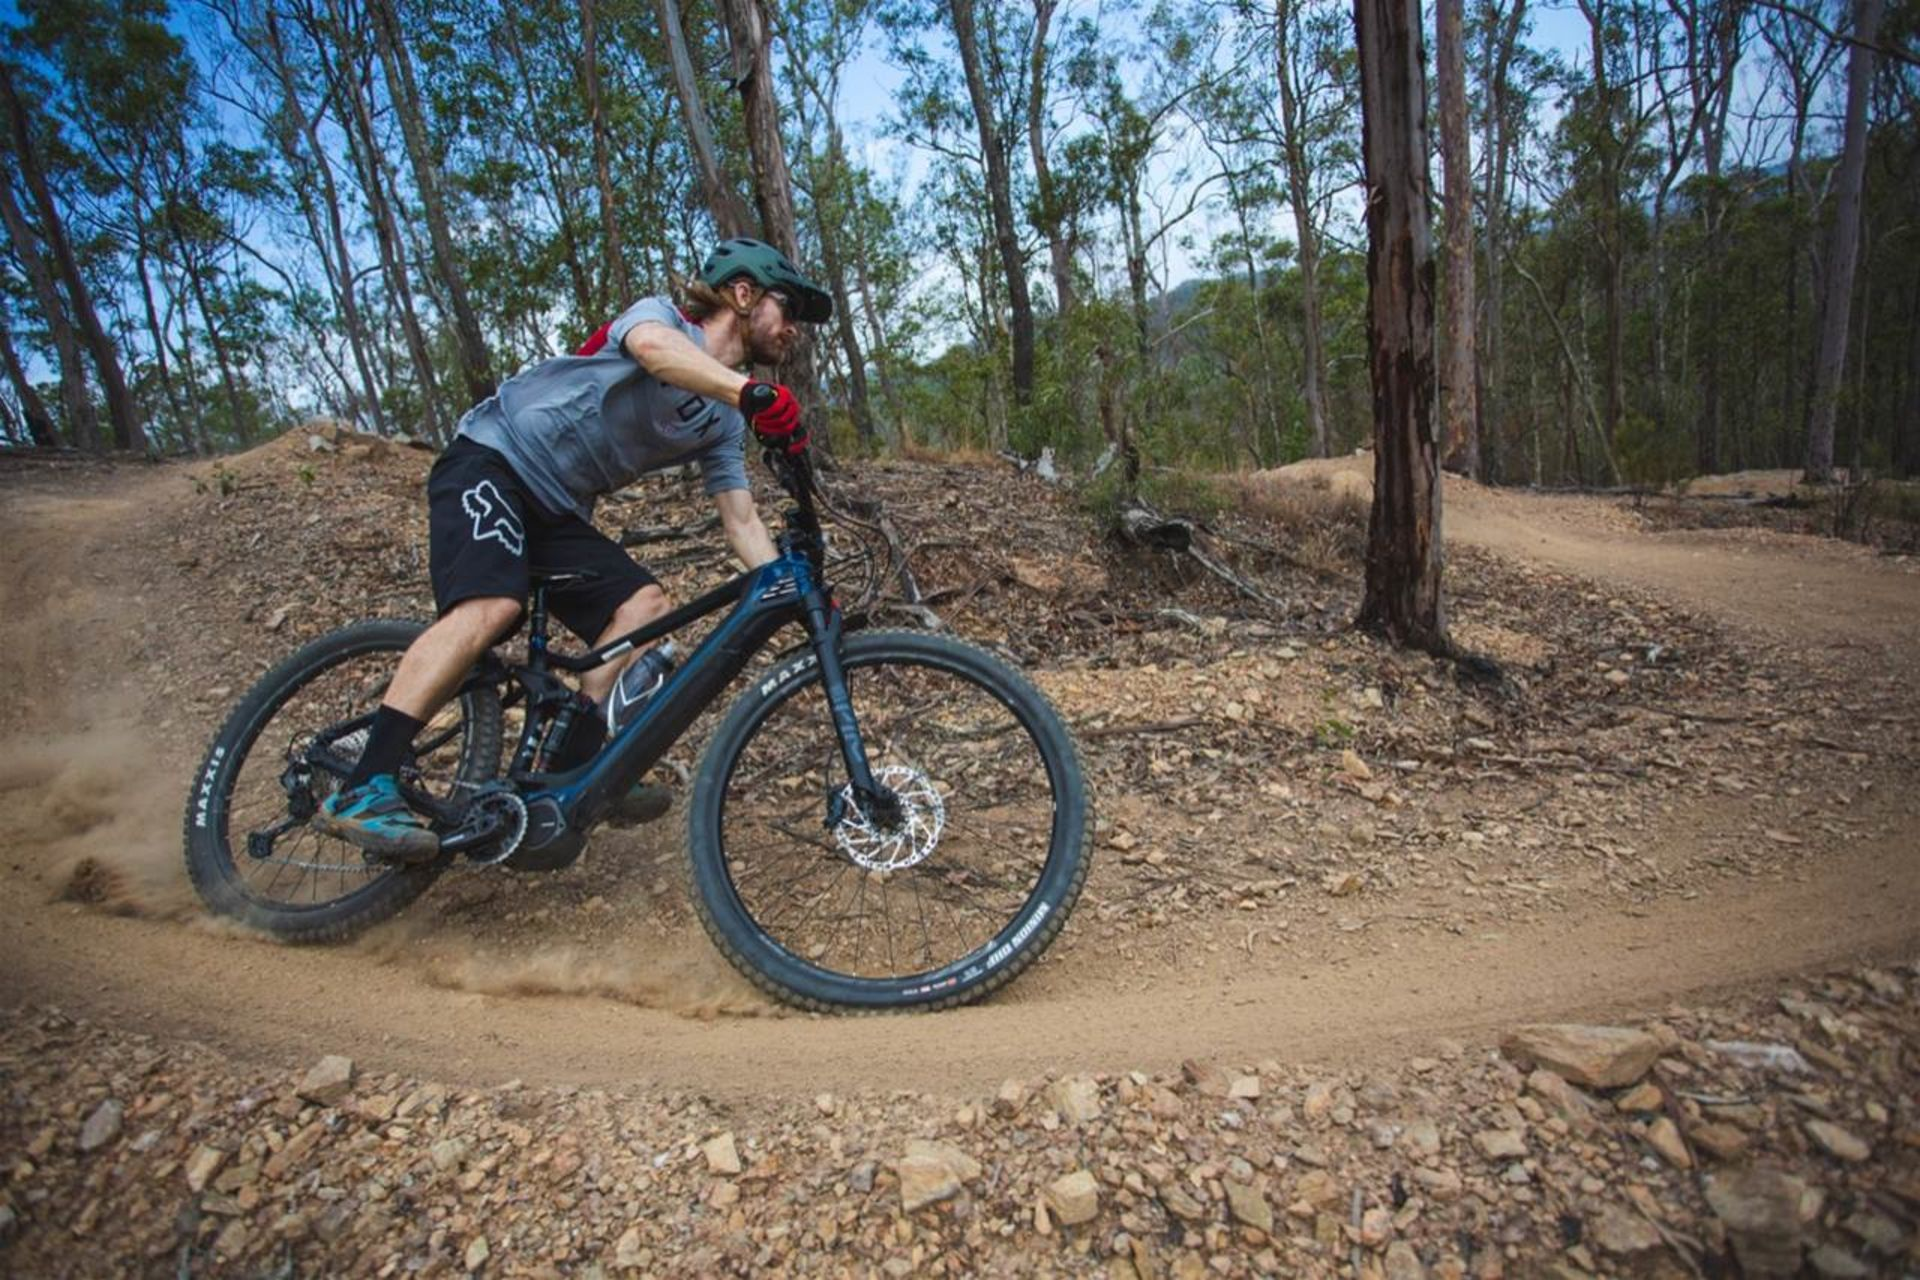 merida, eone forty, ebike, eone forty 8000, amb mag, bike test, review, emtb, tested, carbon, alloy, shimano